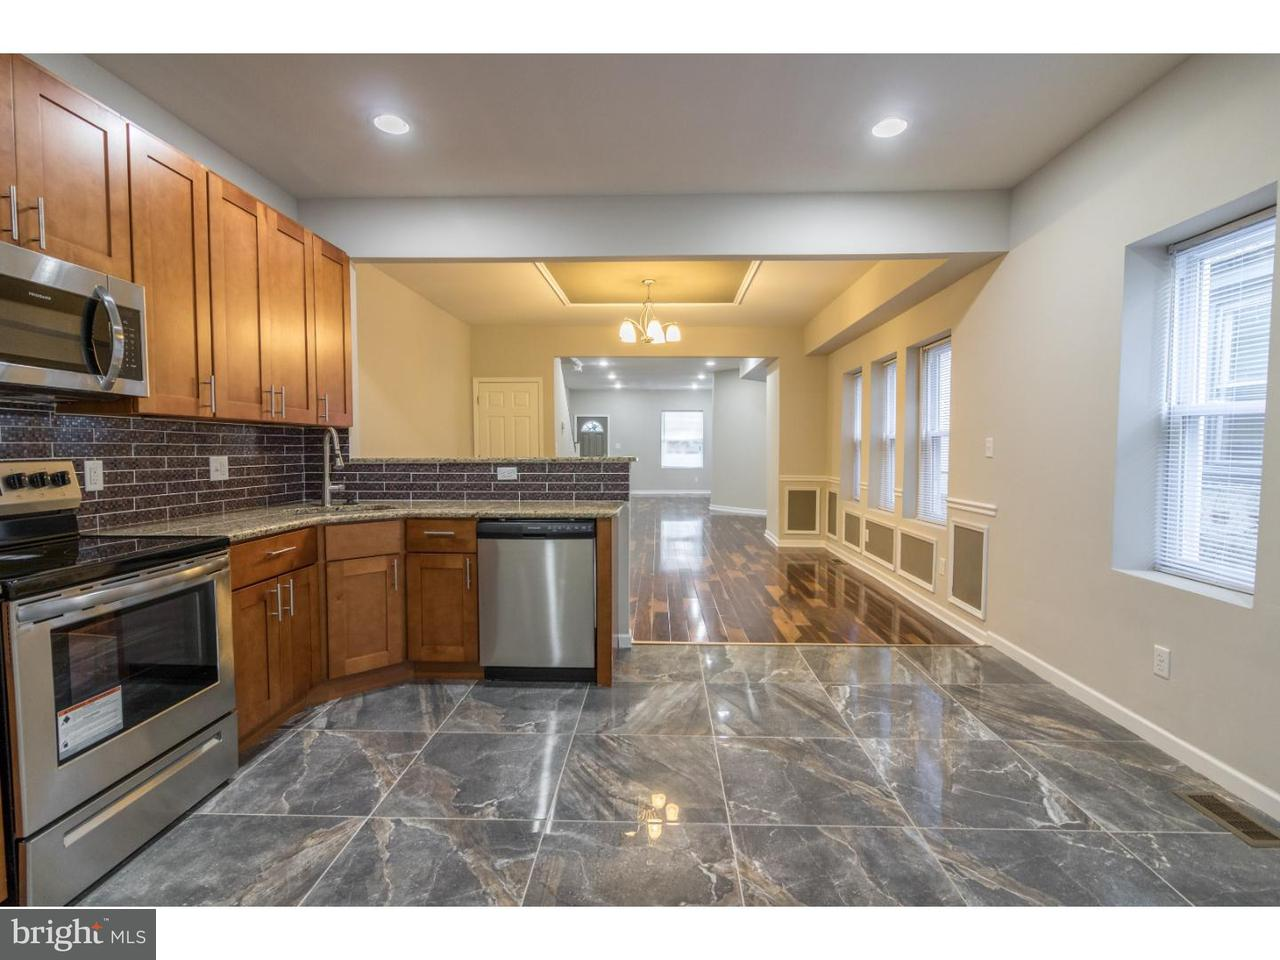 41 E Walnut Philadelphia , PA 19144